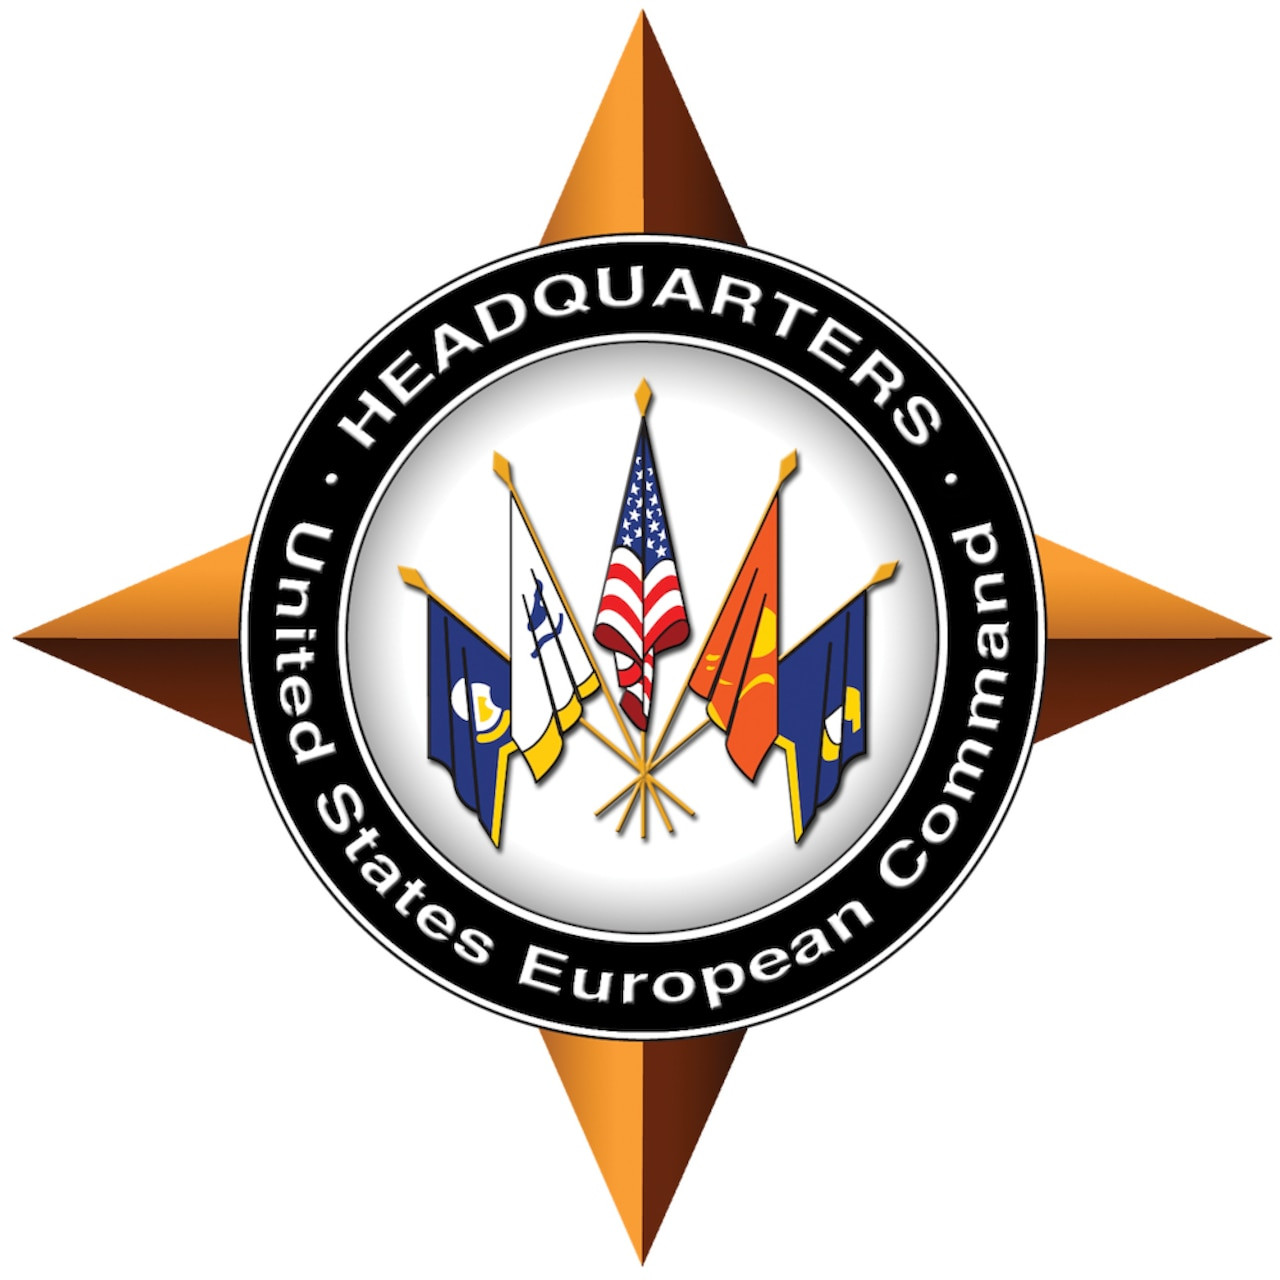 U.S. European Command (USEUCOM) is responsible for U.S. military operations across Europe, portions of Asia and